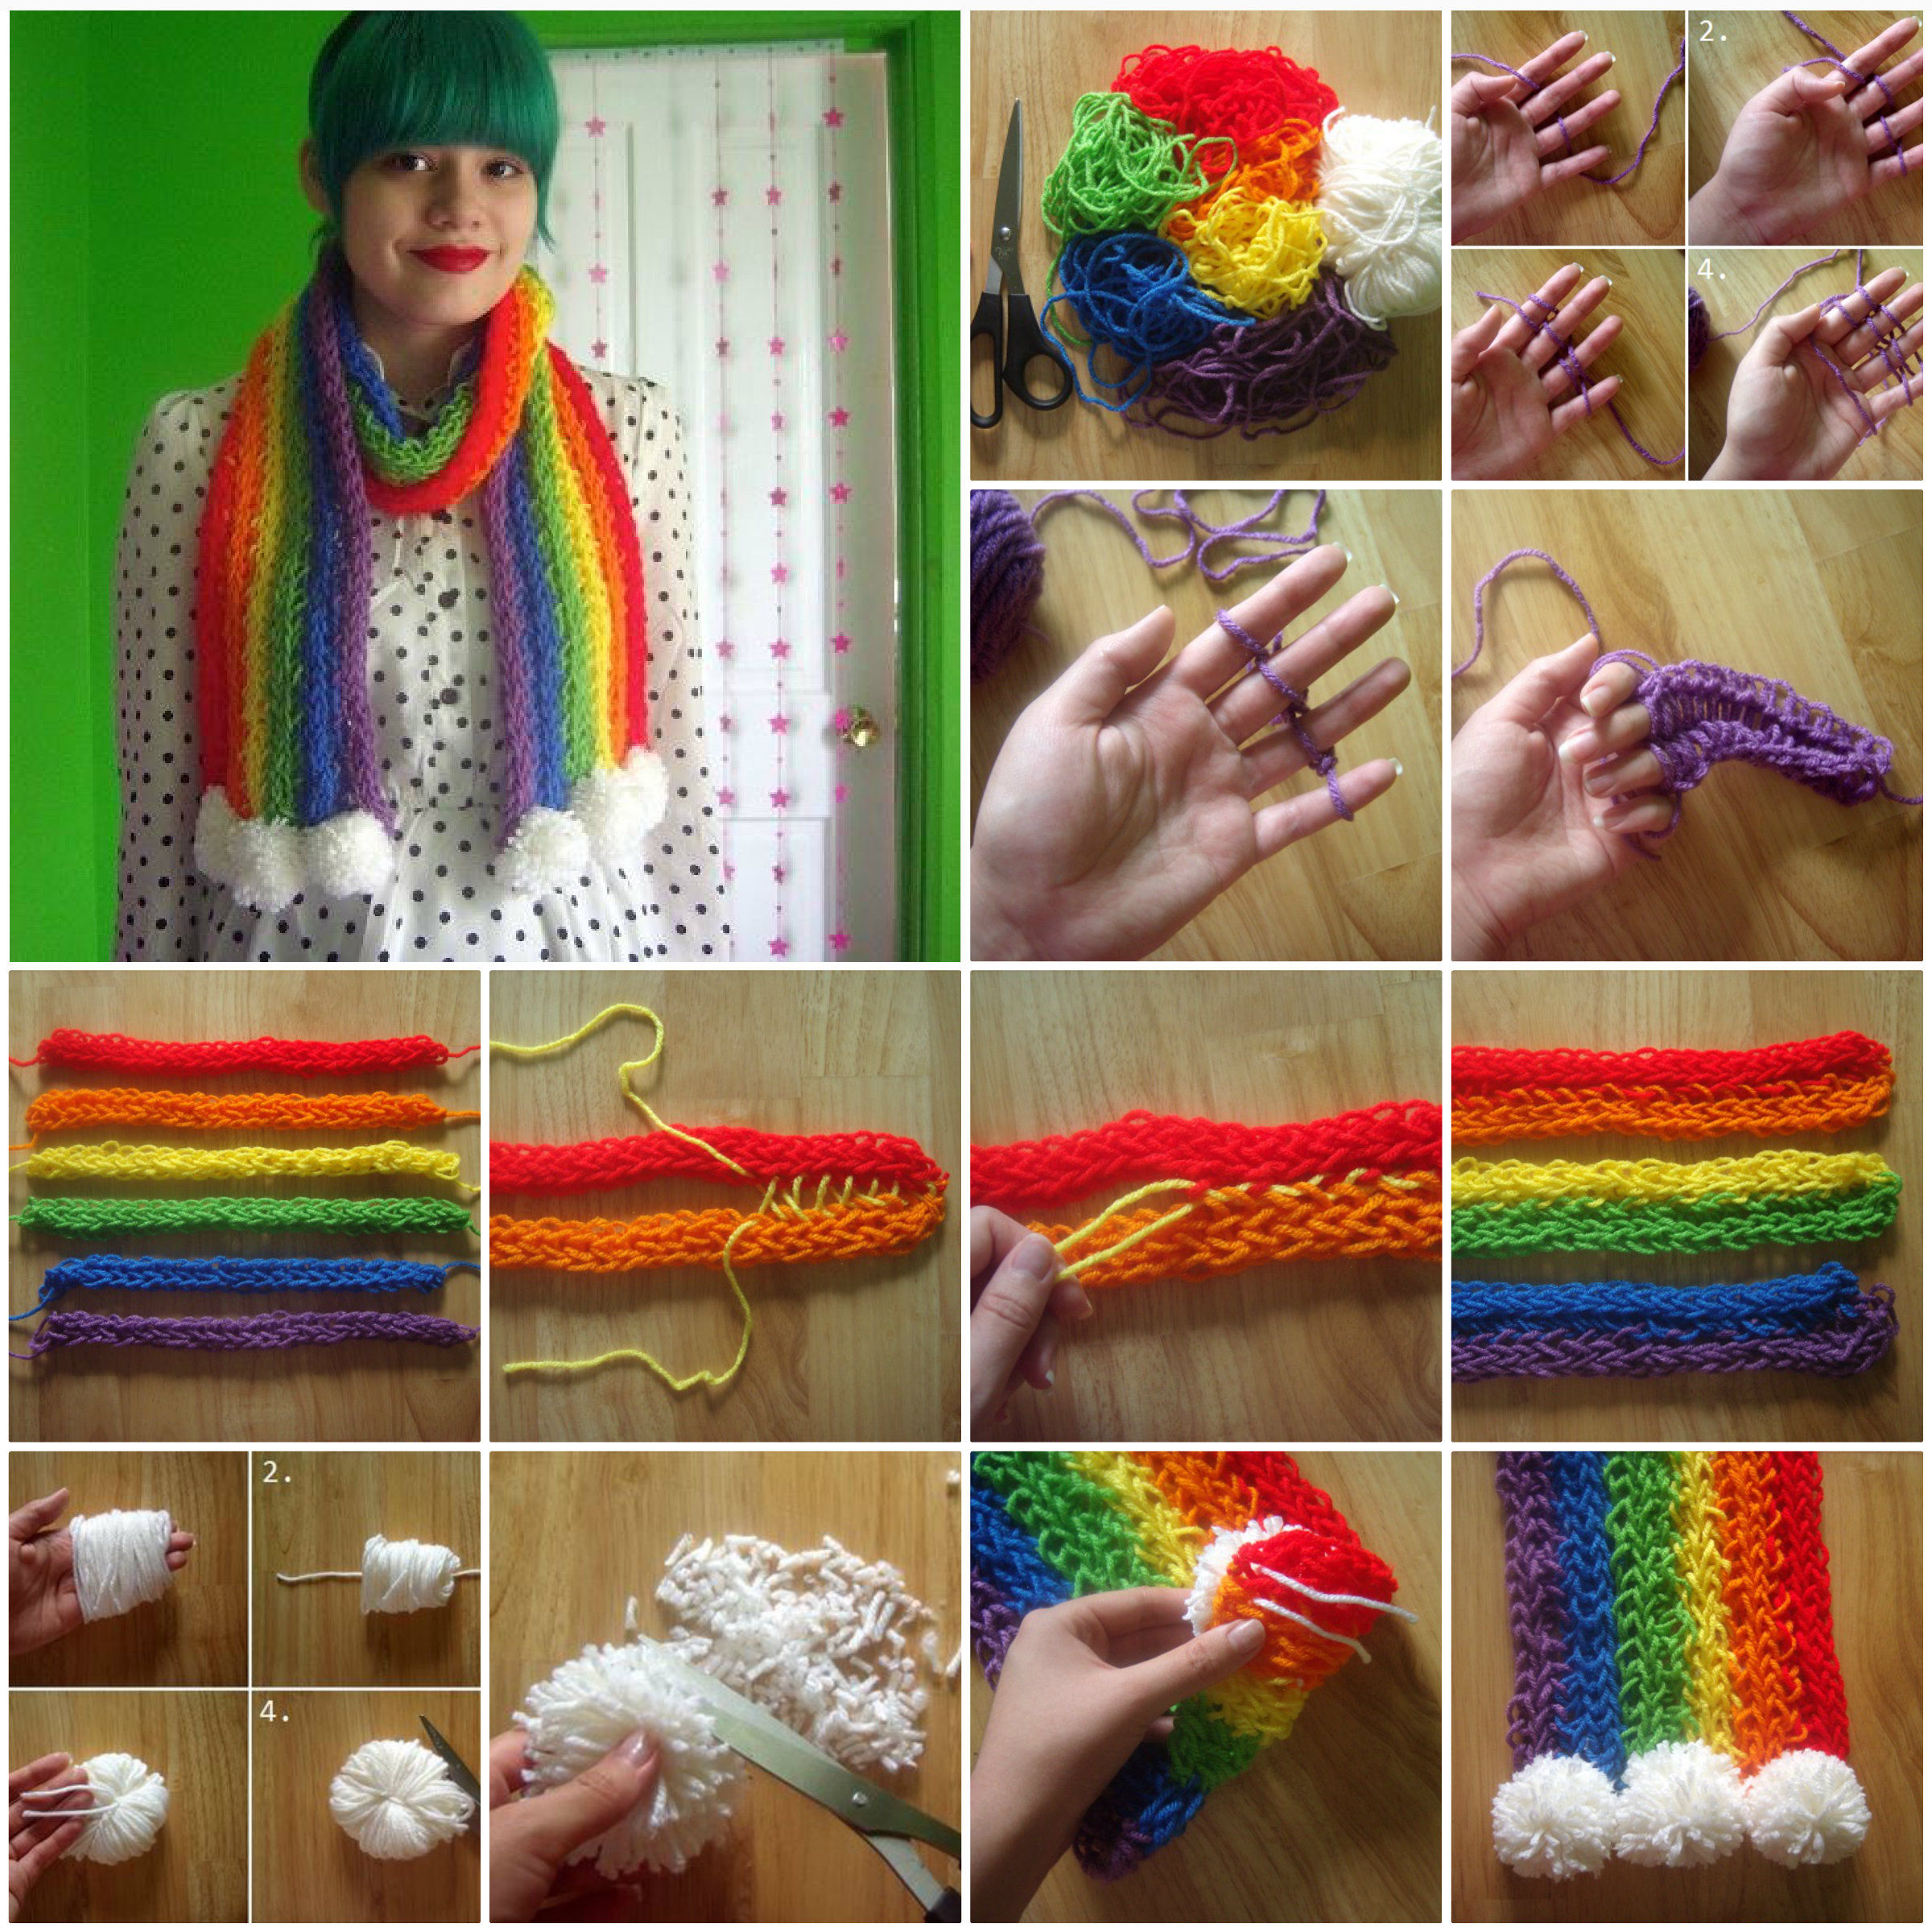 How To Do Knitting Patterns : How To Knit A Scarf With Your Fingers Pictures, Photos, and Images for Facebo...